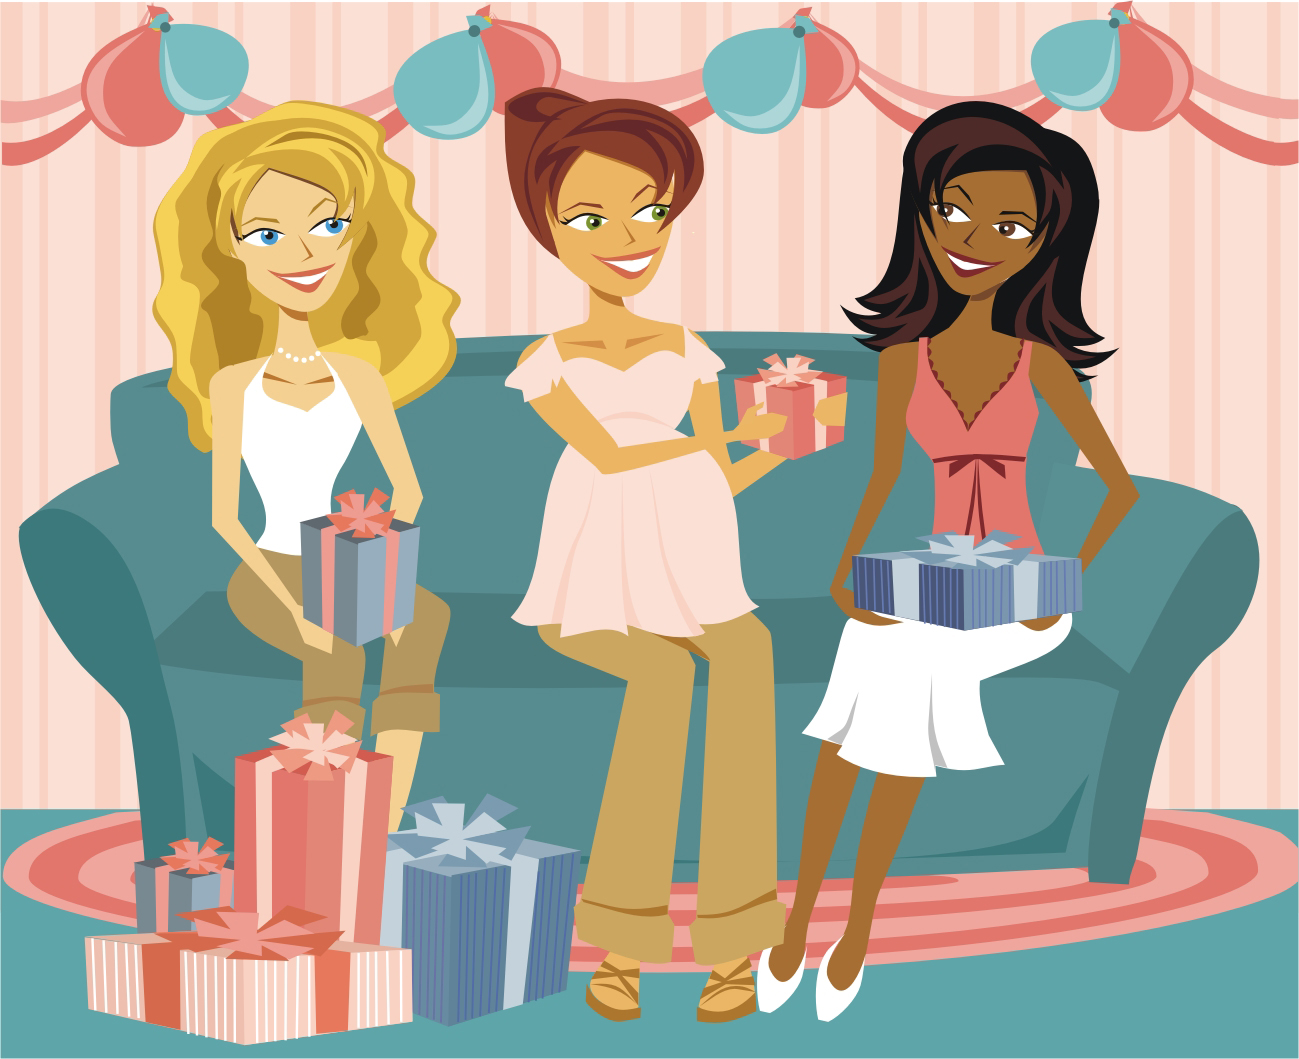 baby-shower-image